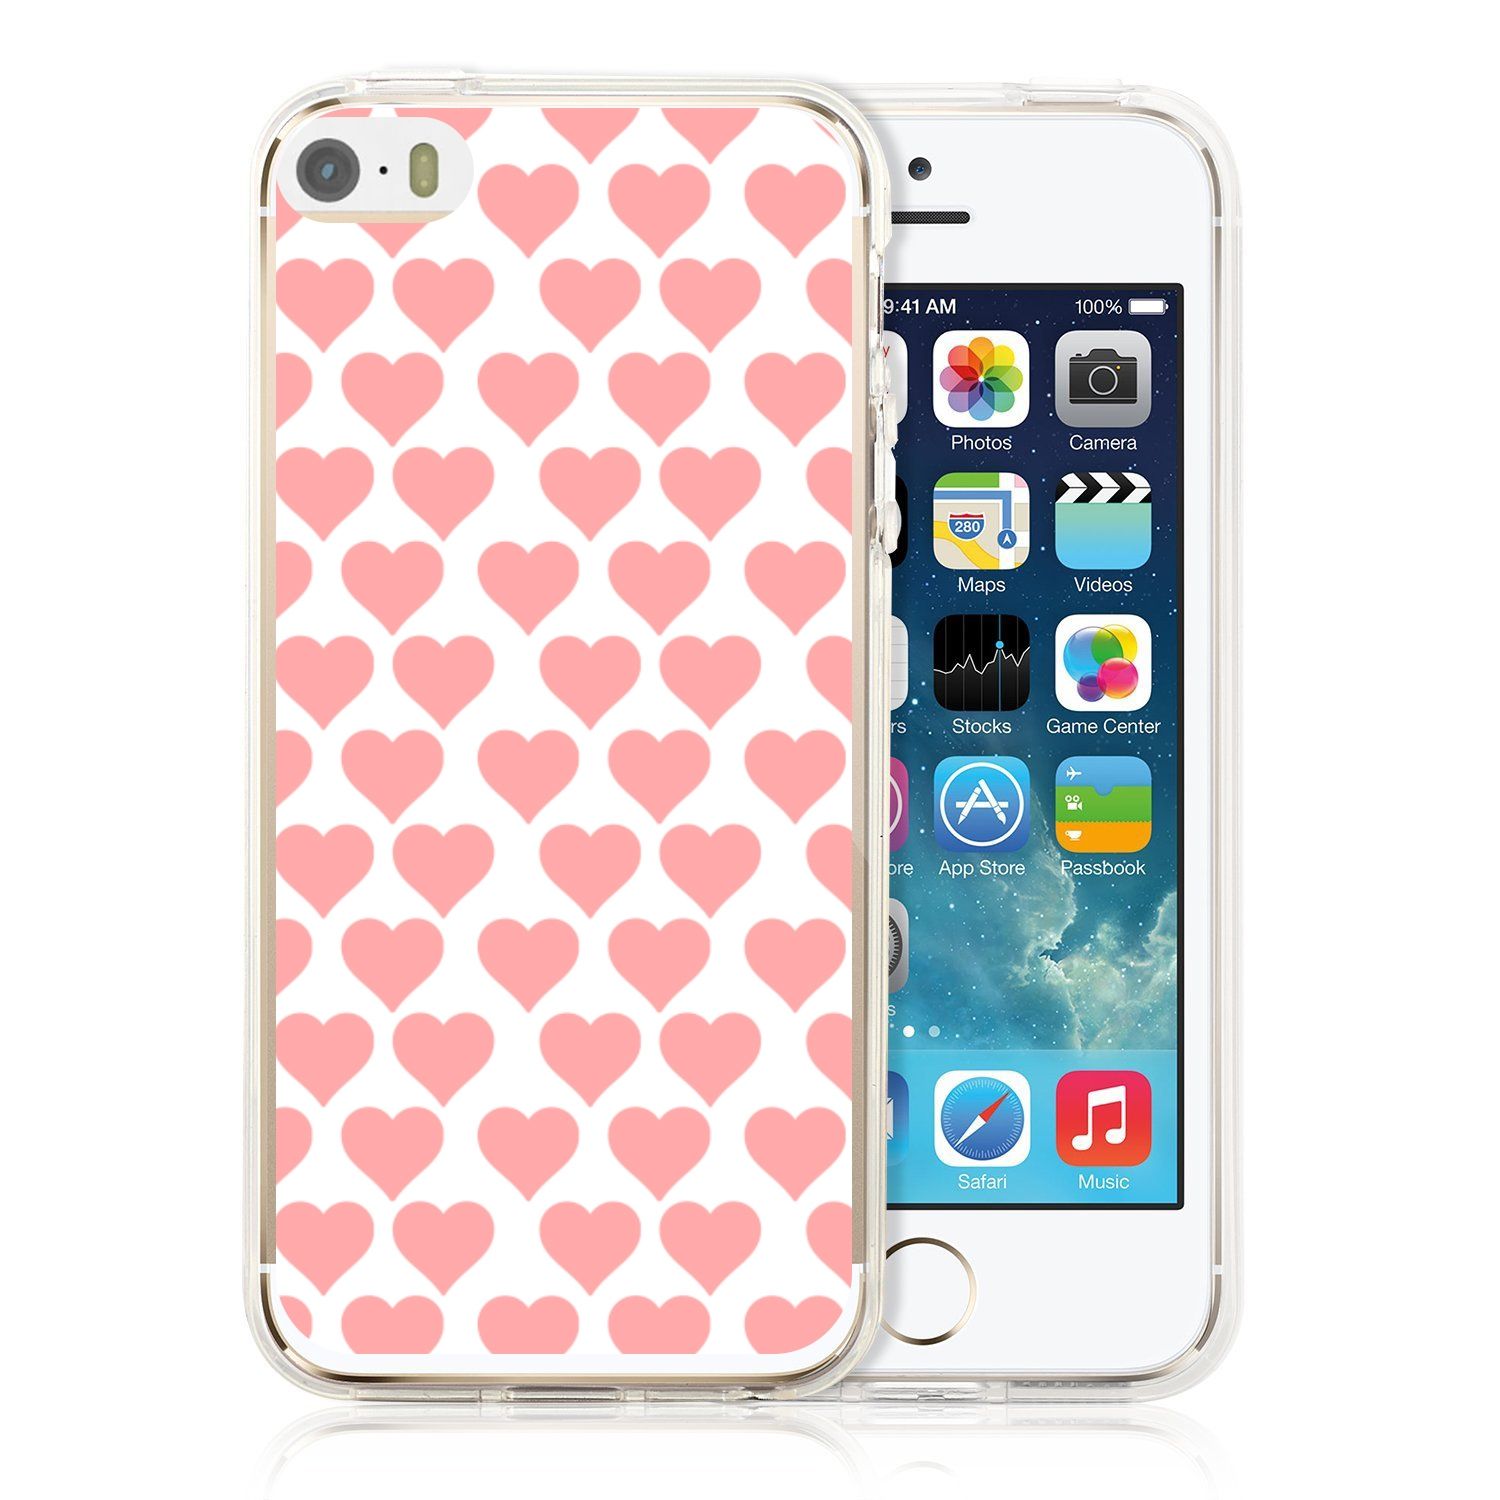 MY ART kryt Apple iPhone 5   5S   SE PINK HEARTS (013) 3318bfe86dc